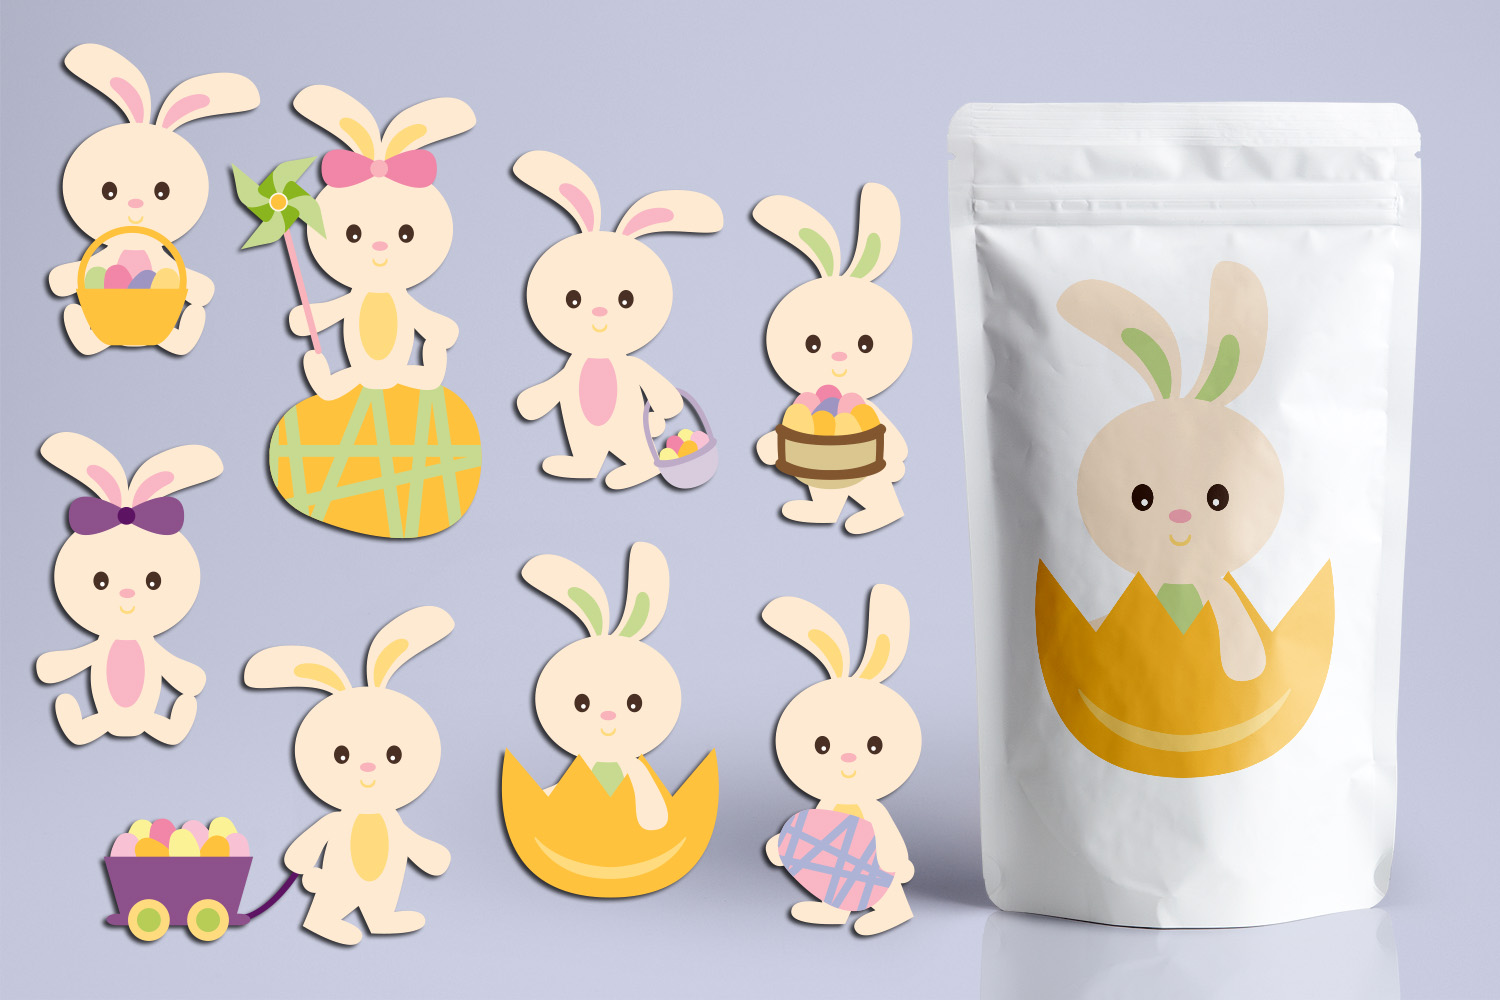 Download Free Easter Bunnies Graphic By Revidevi Creative Fabrica for Cricut Explore, Silhouette and other cutting machines.